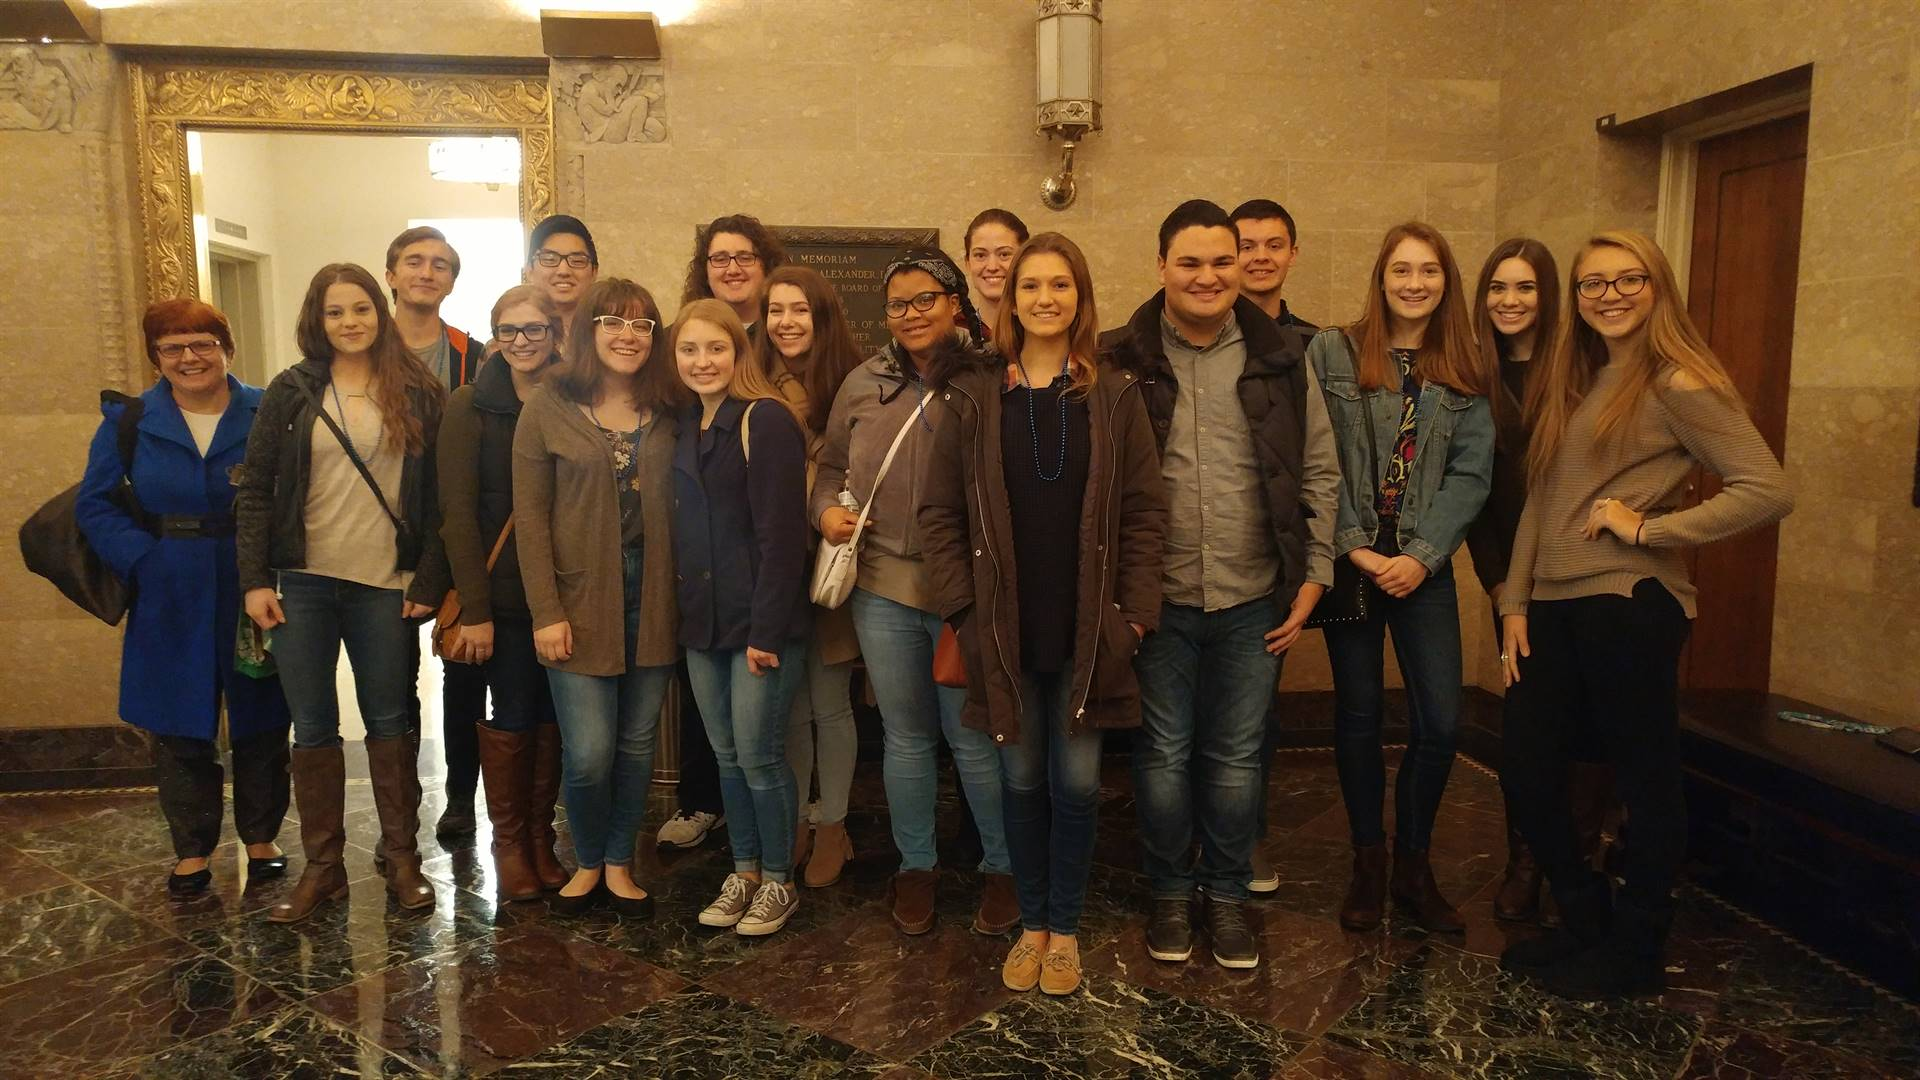 BPHS students who observed open heart surgery